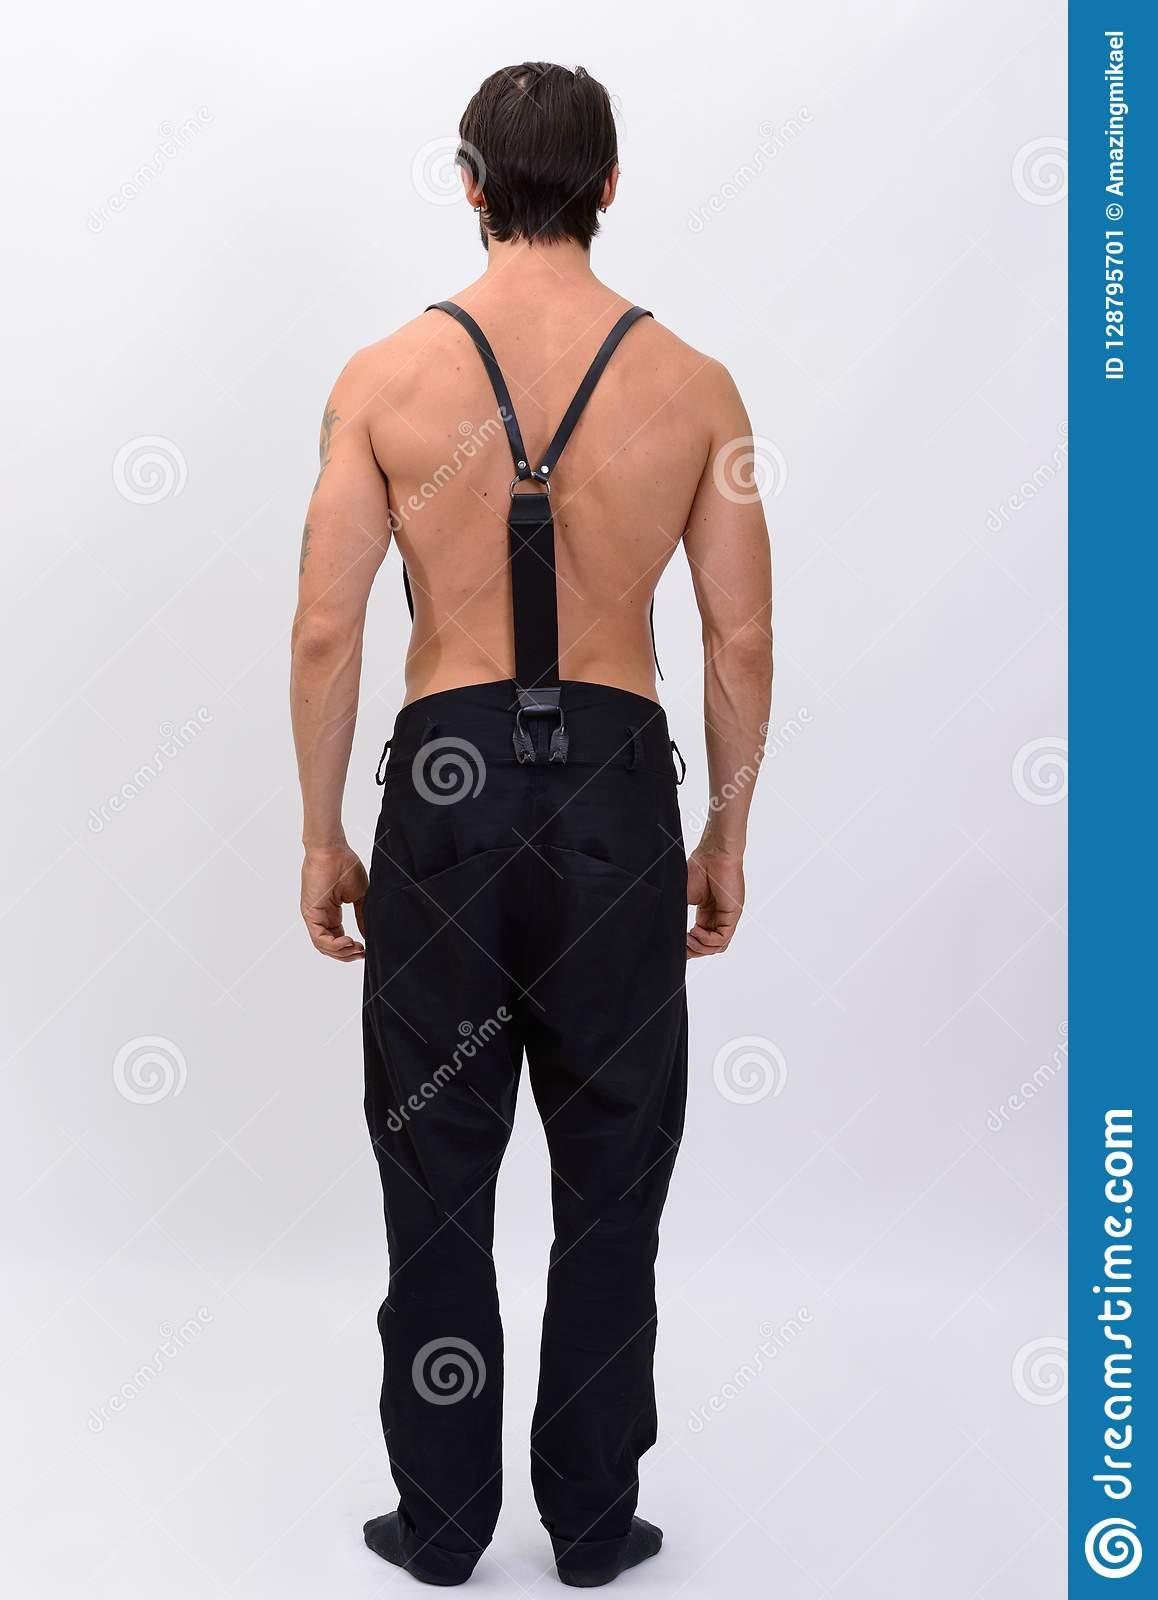 7e3d6c5e20322 Full Body Shot Of Back View Of Muscular Man With Suspenders Shir ...